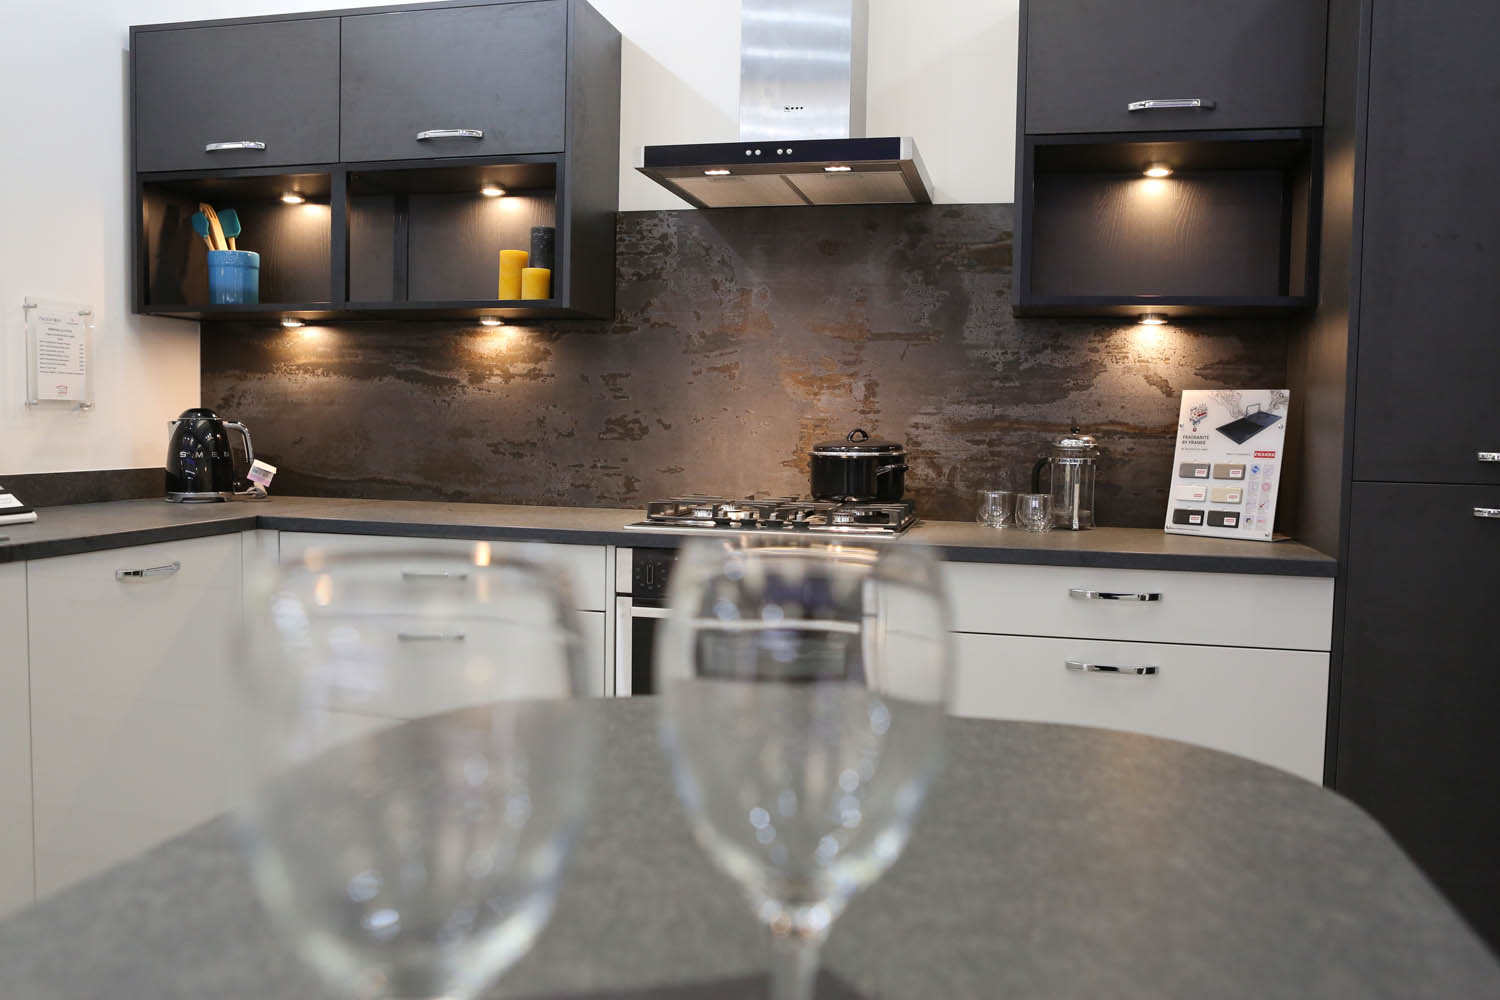 Gardiner Haskins fitted kitchen showroom - dark grey fitted kitchen with a slate patina splashback